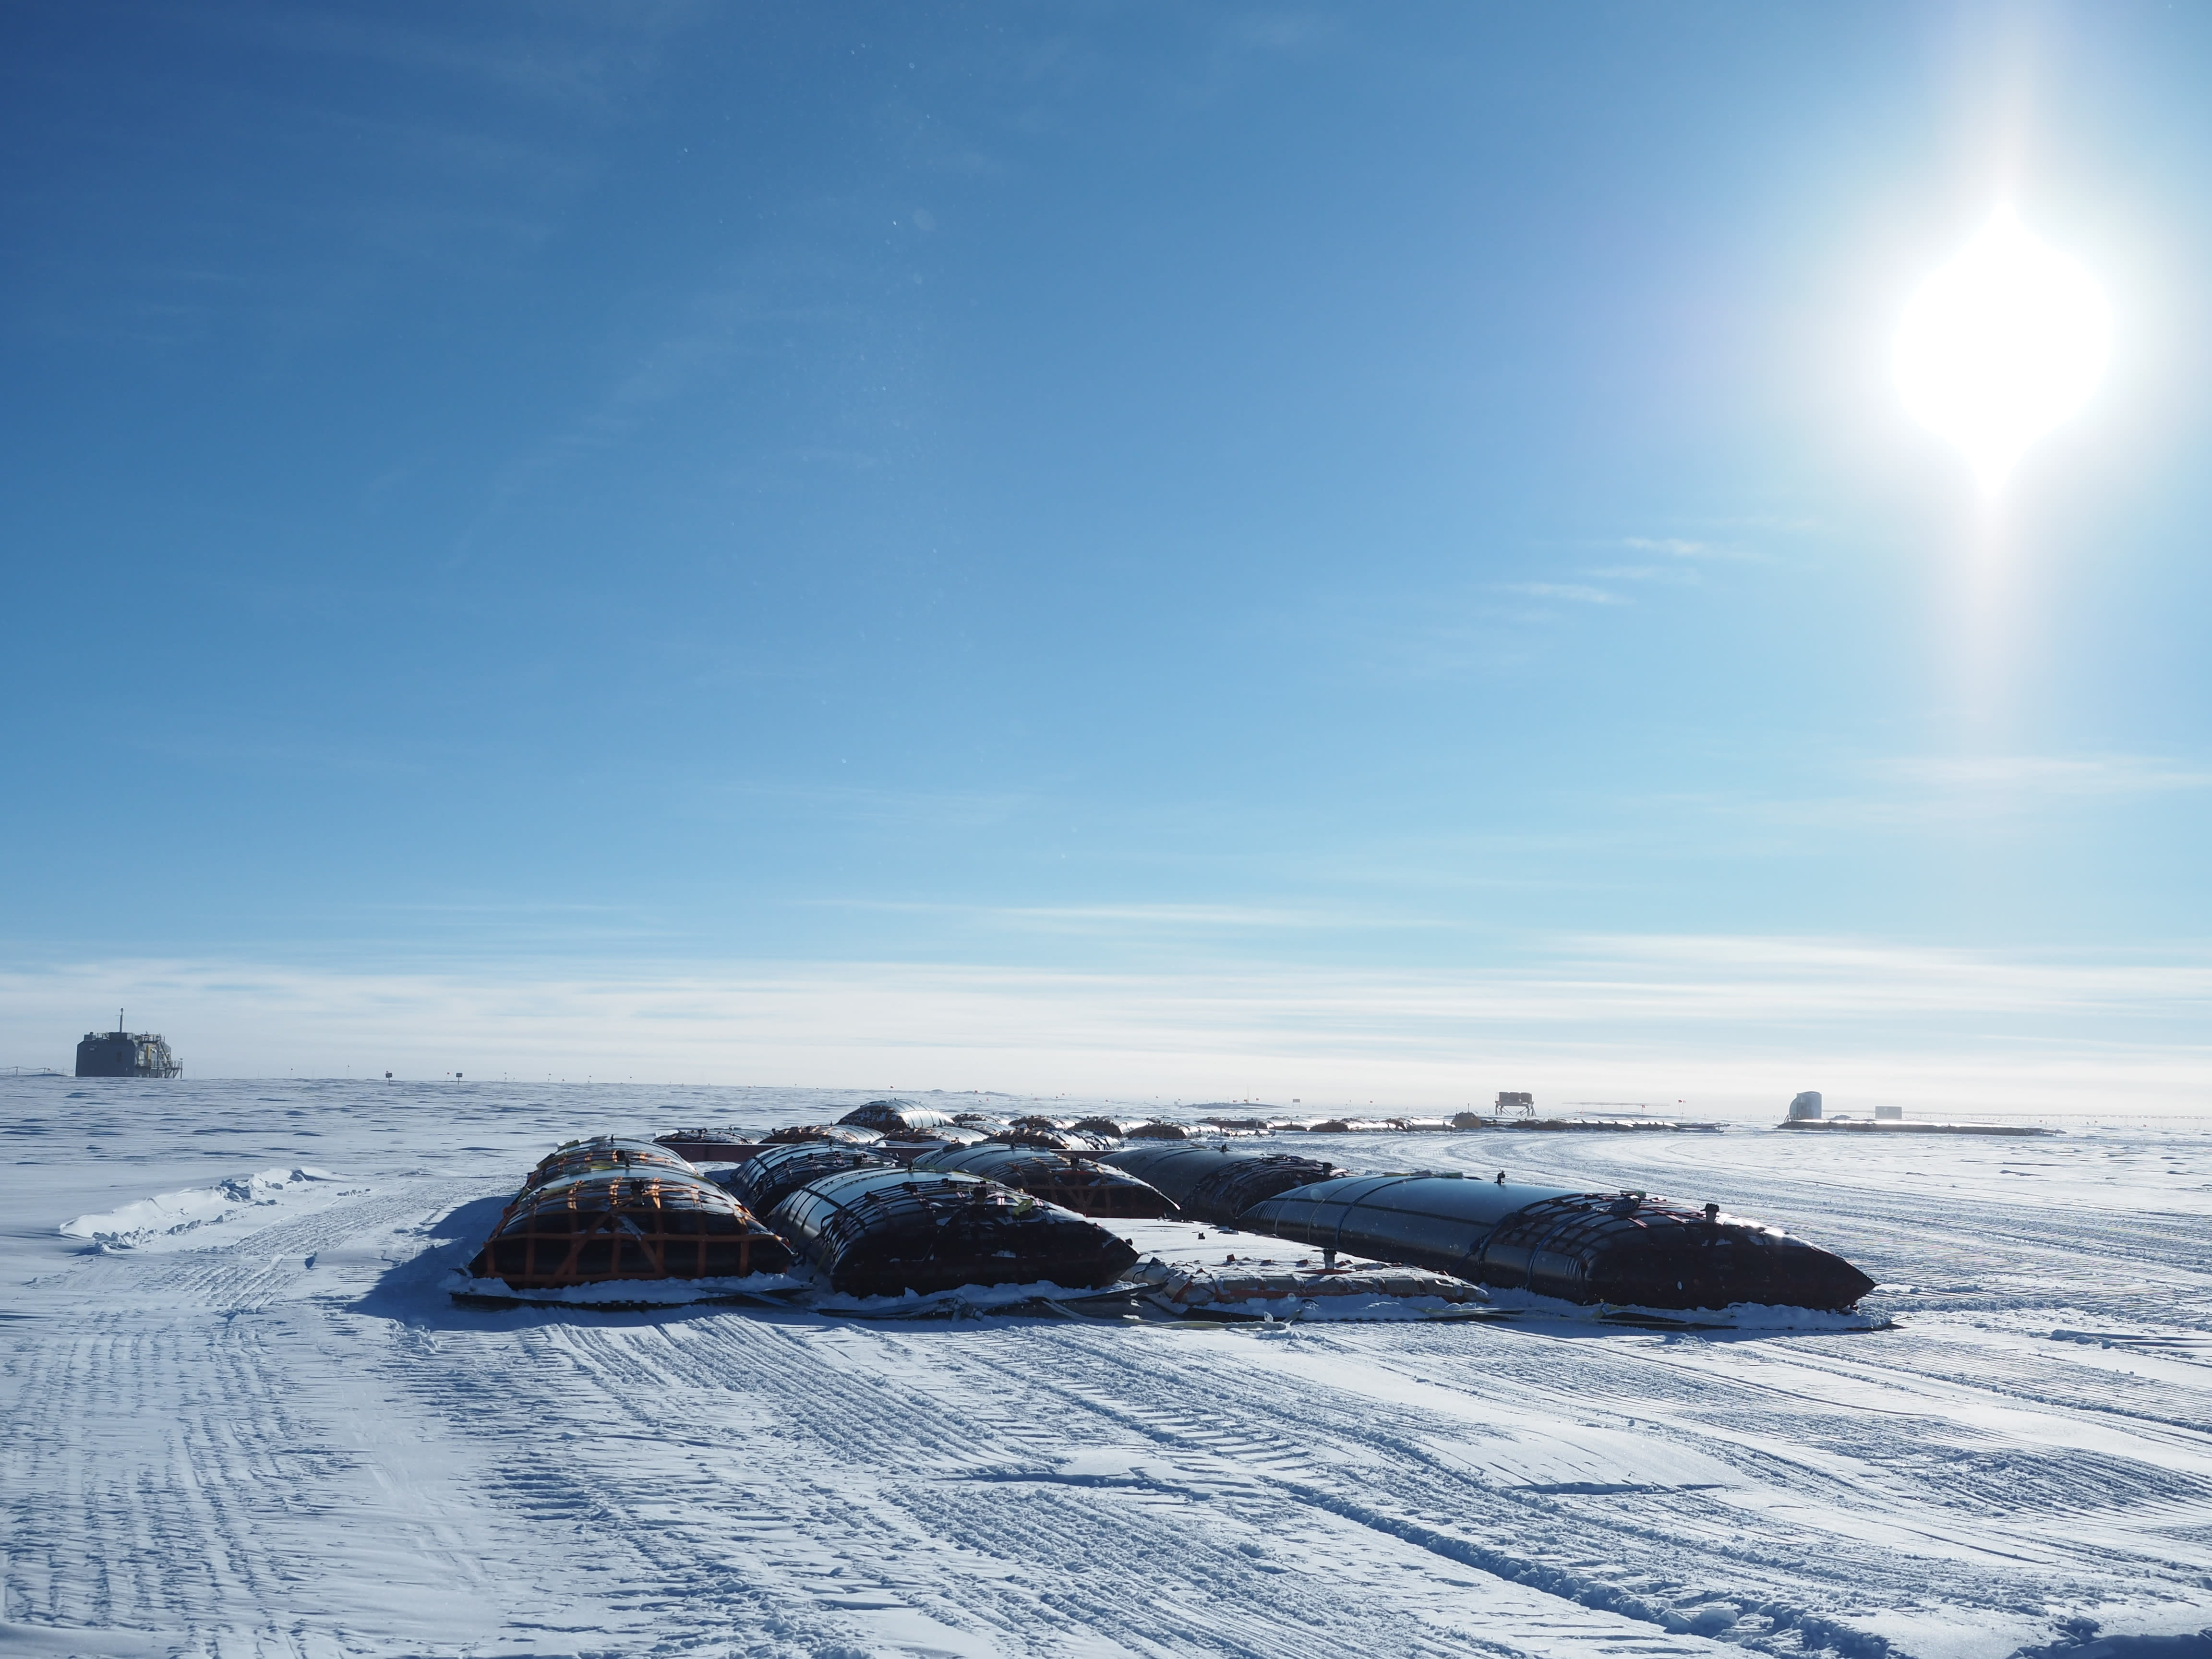 Large fuel bladders parked on the ice at the South Pole.]